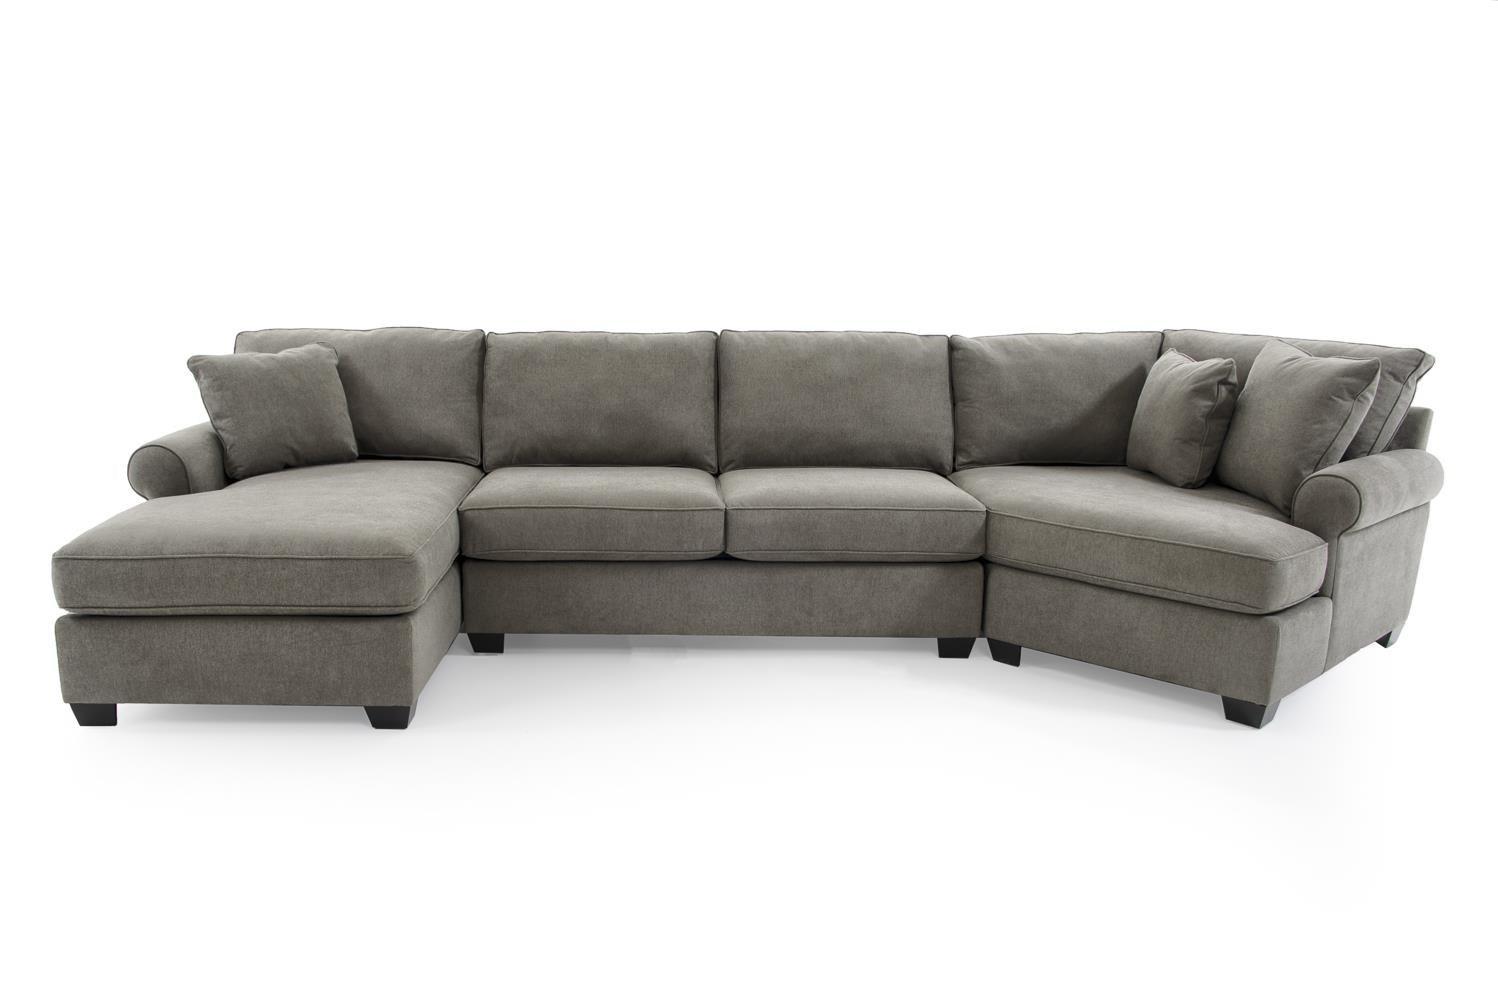 jessica casual three piece sectional sofa with cuddler by max home at baer s furniture